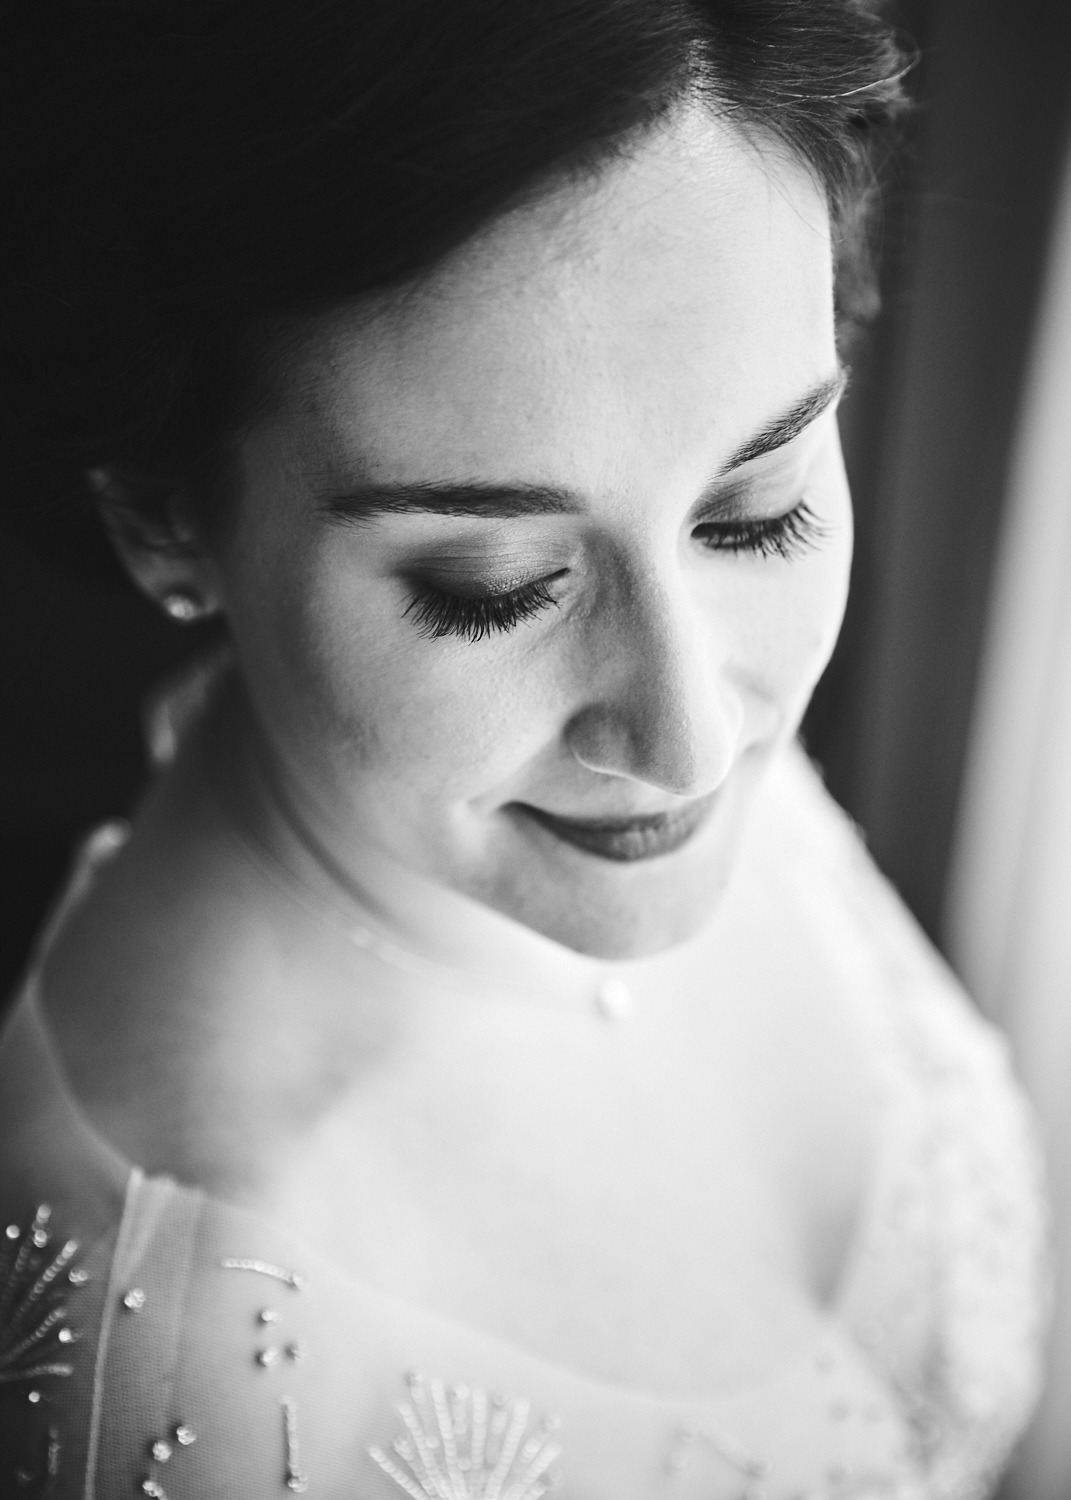 161022_A&B_26BridgeStWedding_By_BriJohnsonWeddings_0024.jpg